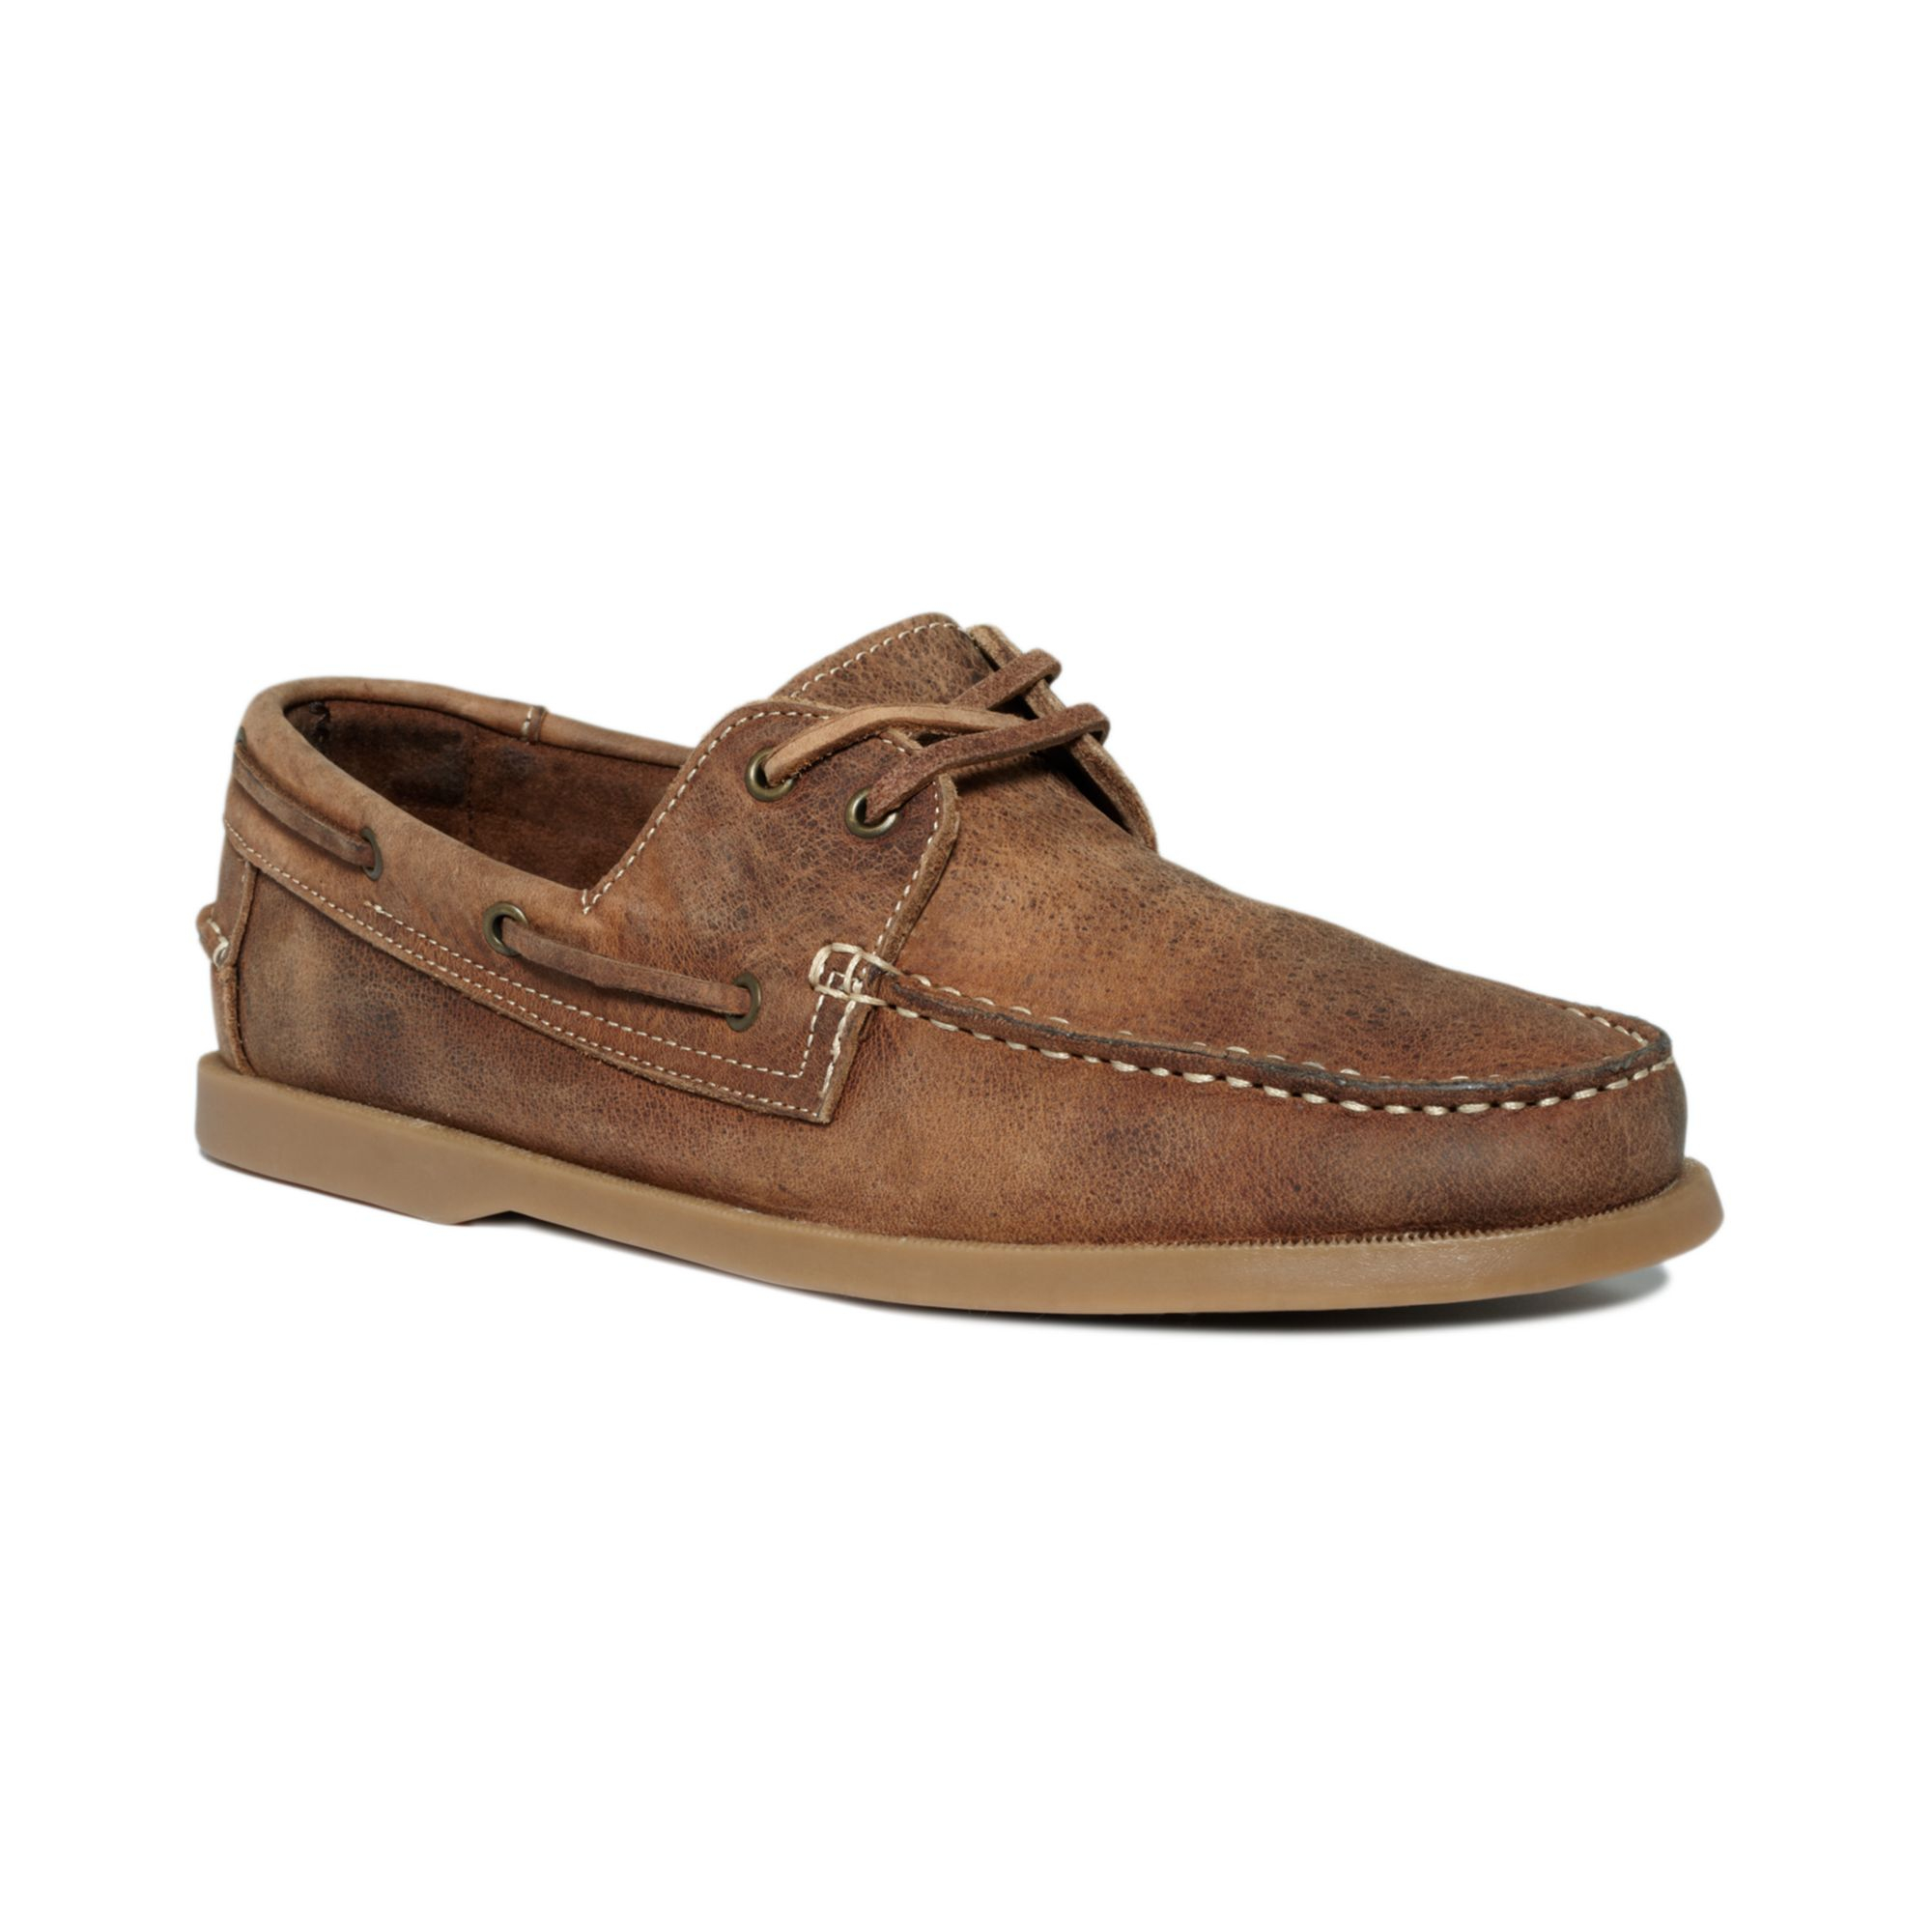 bed stu uncle frank boat shoes in brown for men | lyst